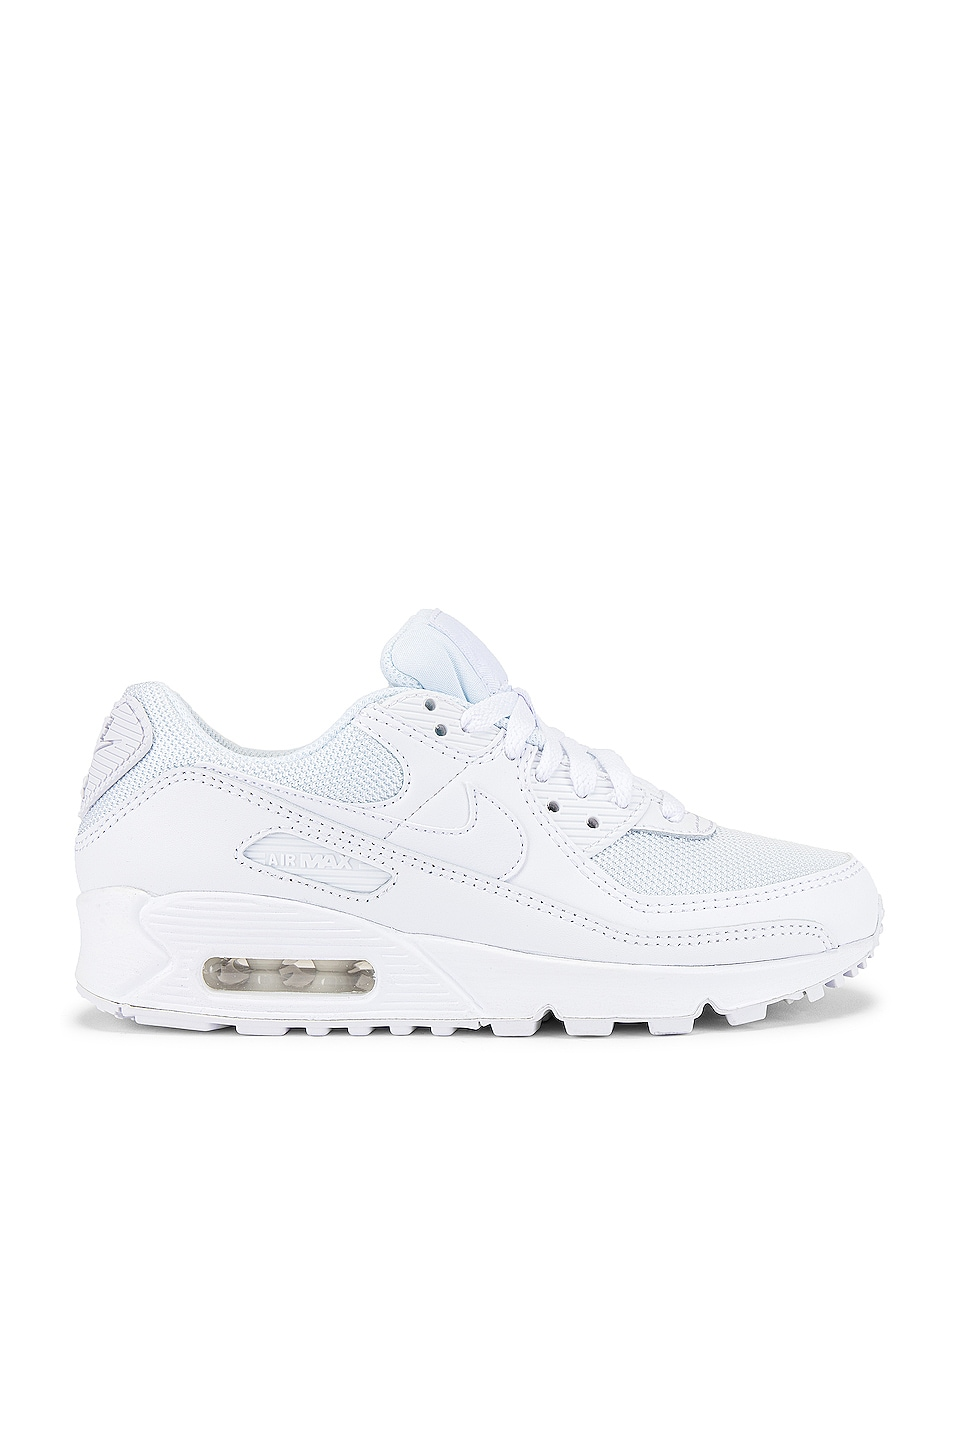 Nike Air Max 90 365 Sneaker in White & Wolf Grey